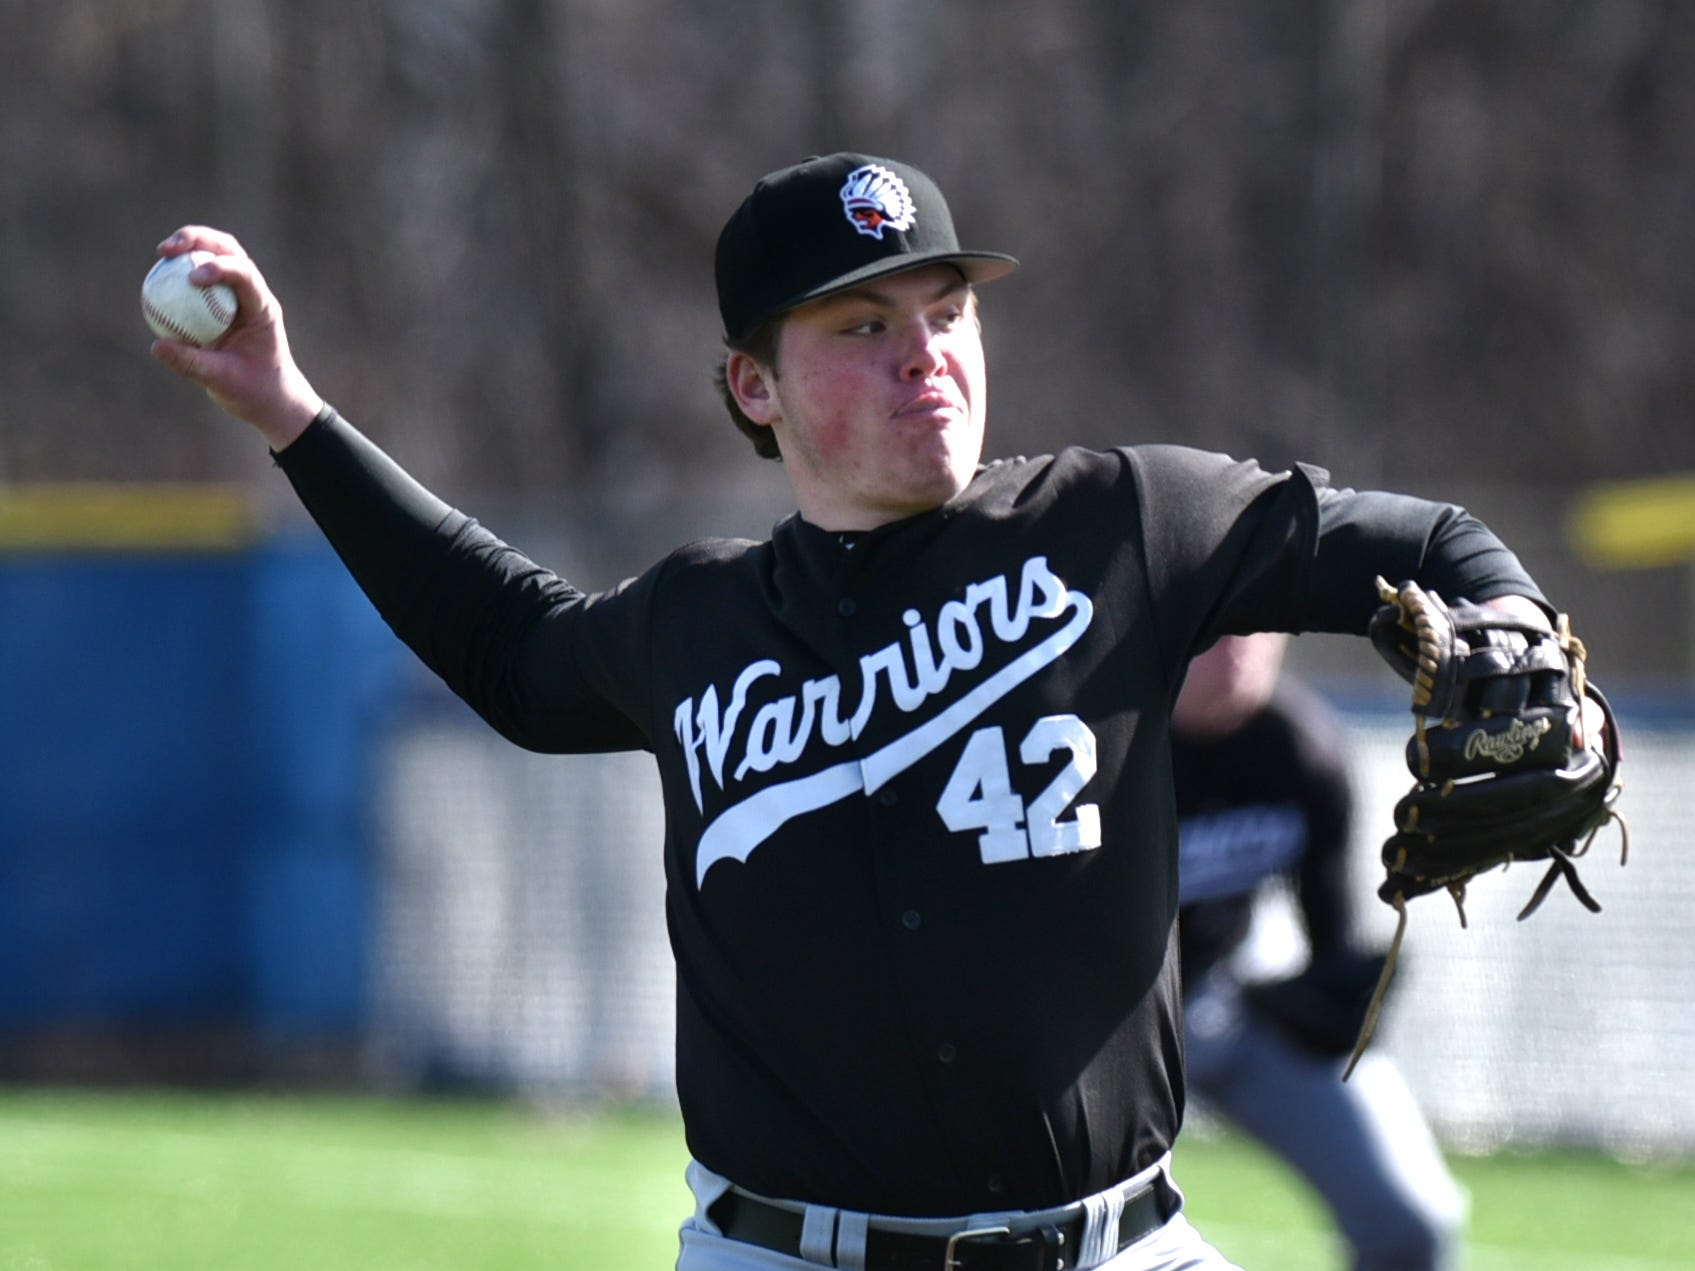 Brother Rice Warrior Tommy Maclean pitches to a Shamrock batter on April 3, 2019.